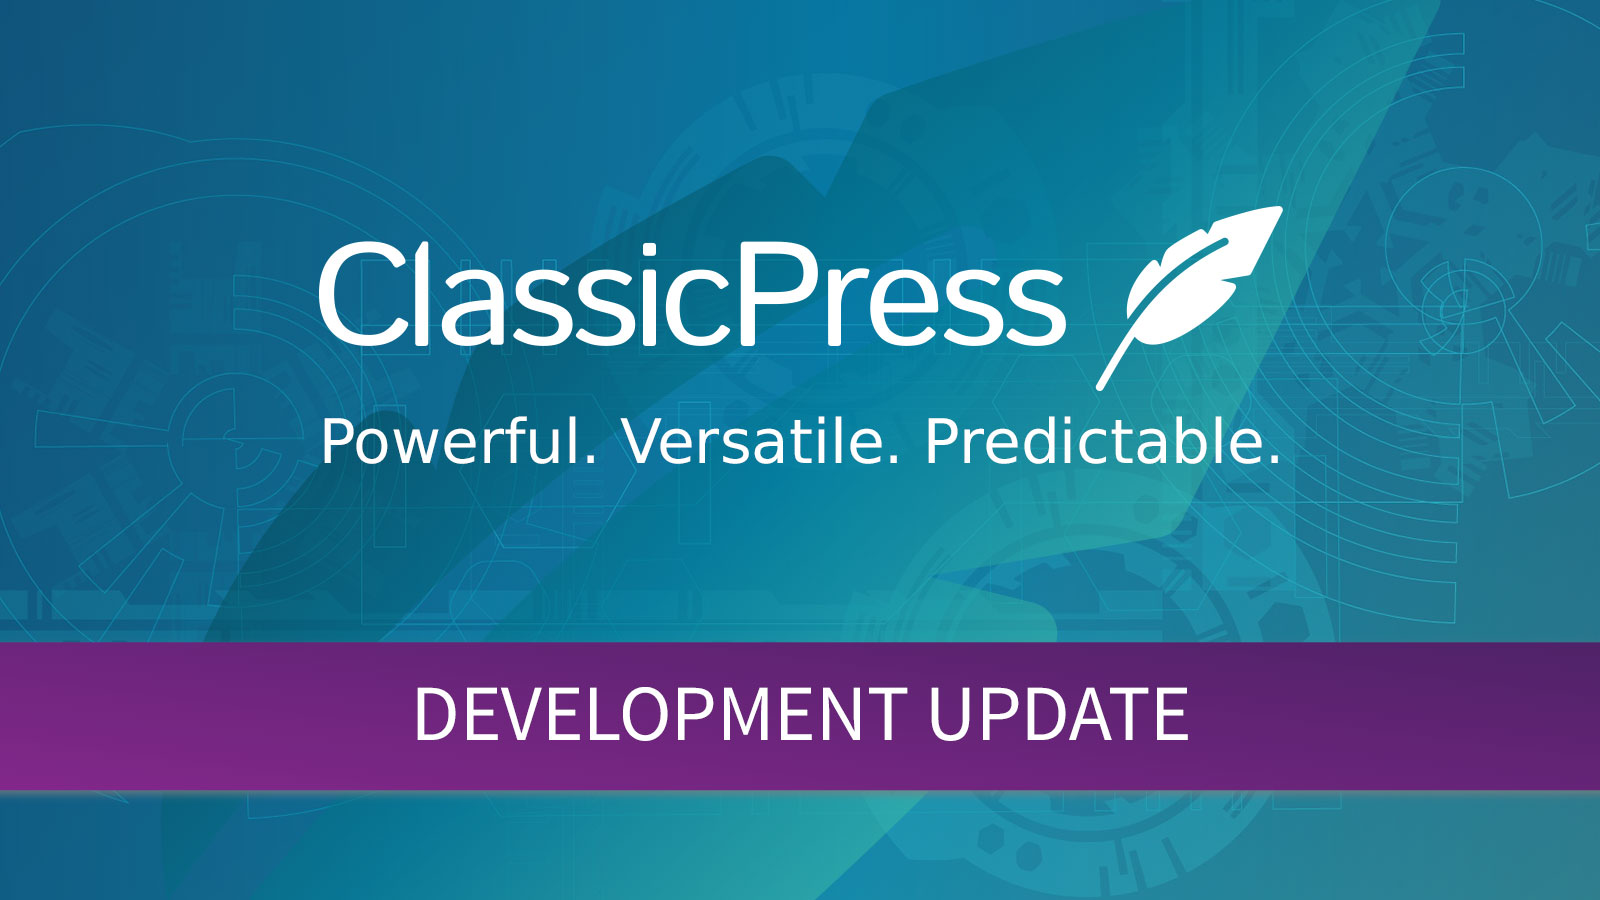 ClassicPress Development Update